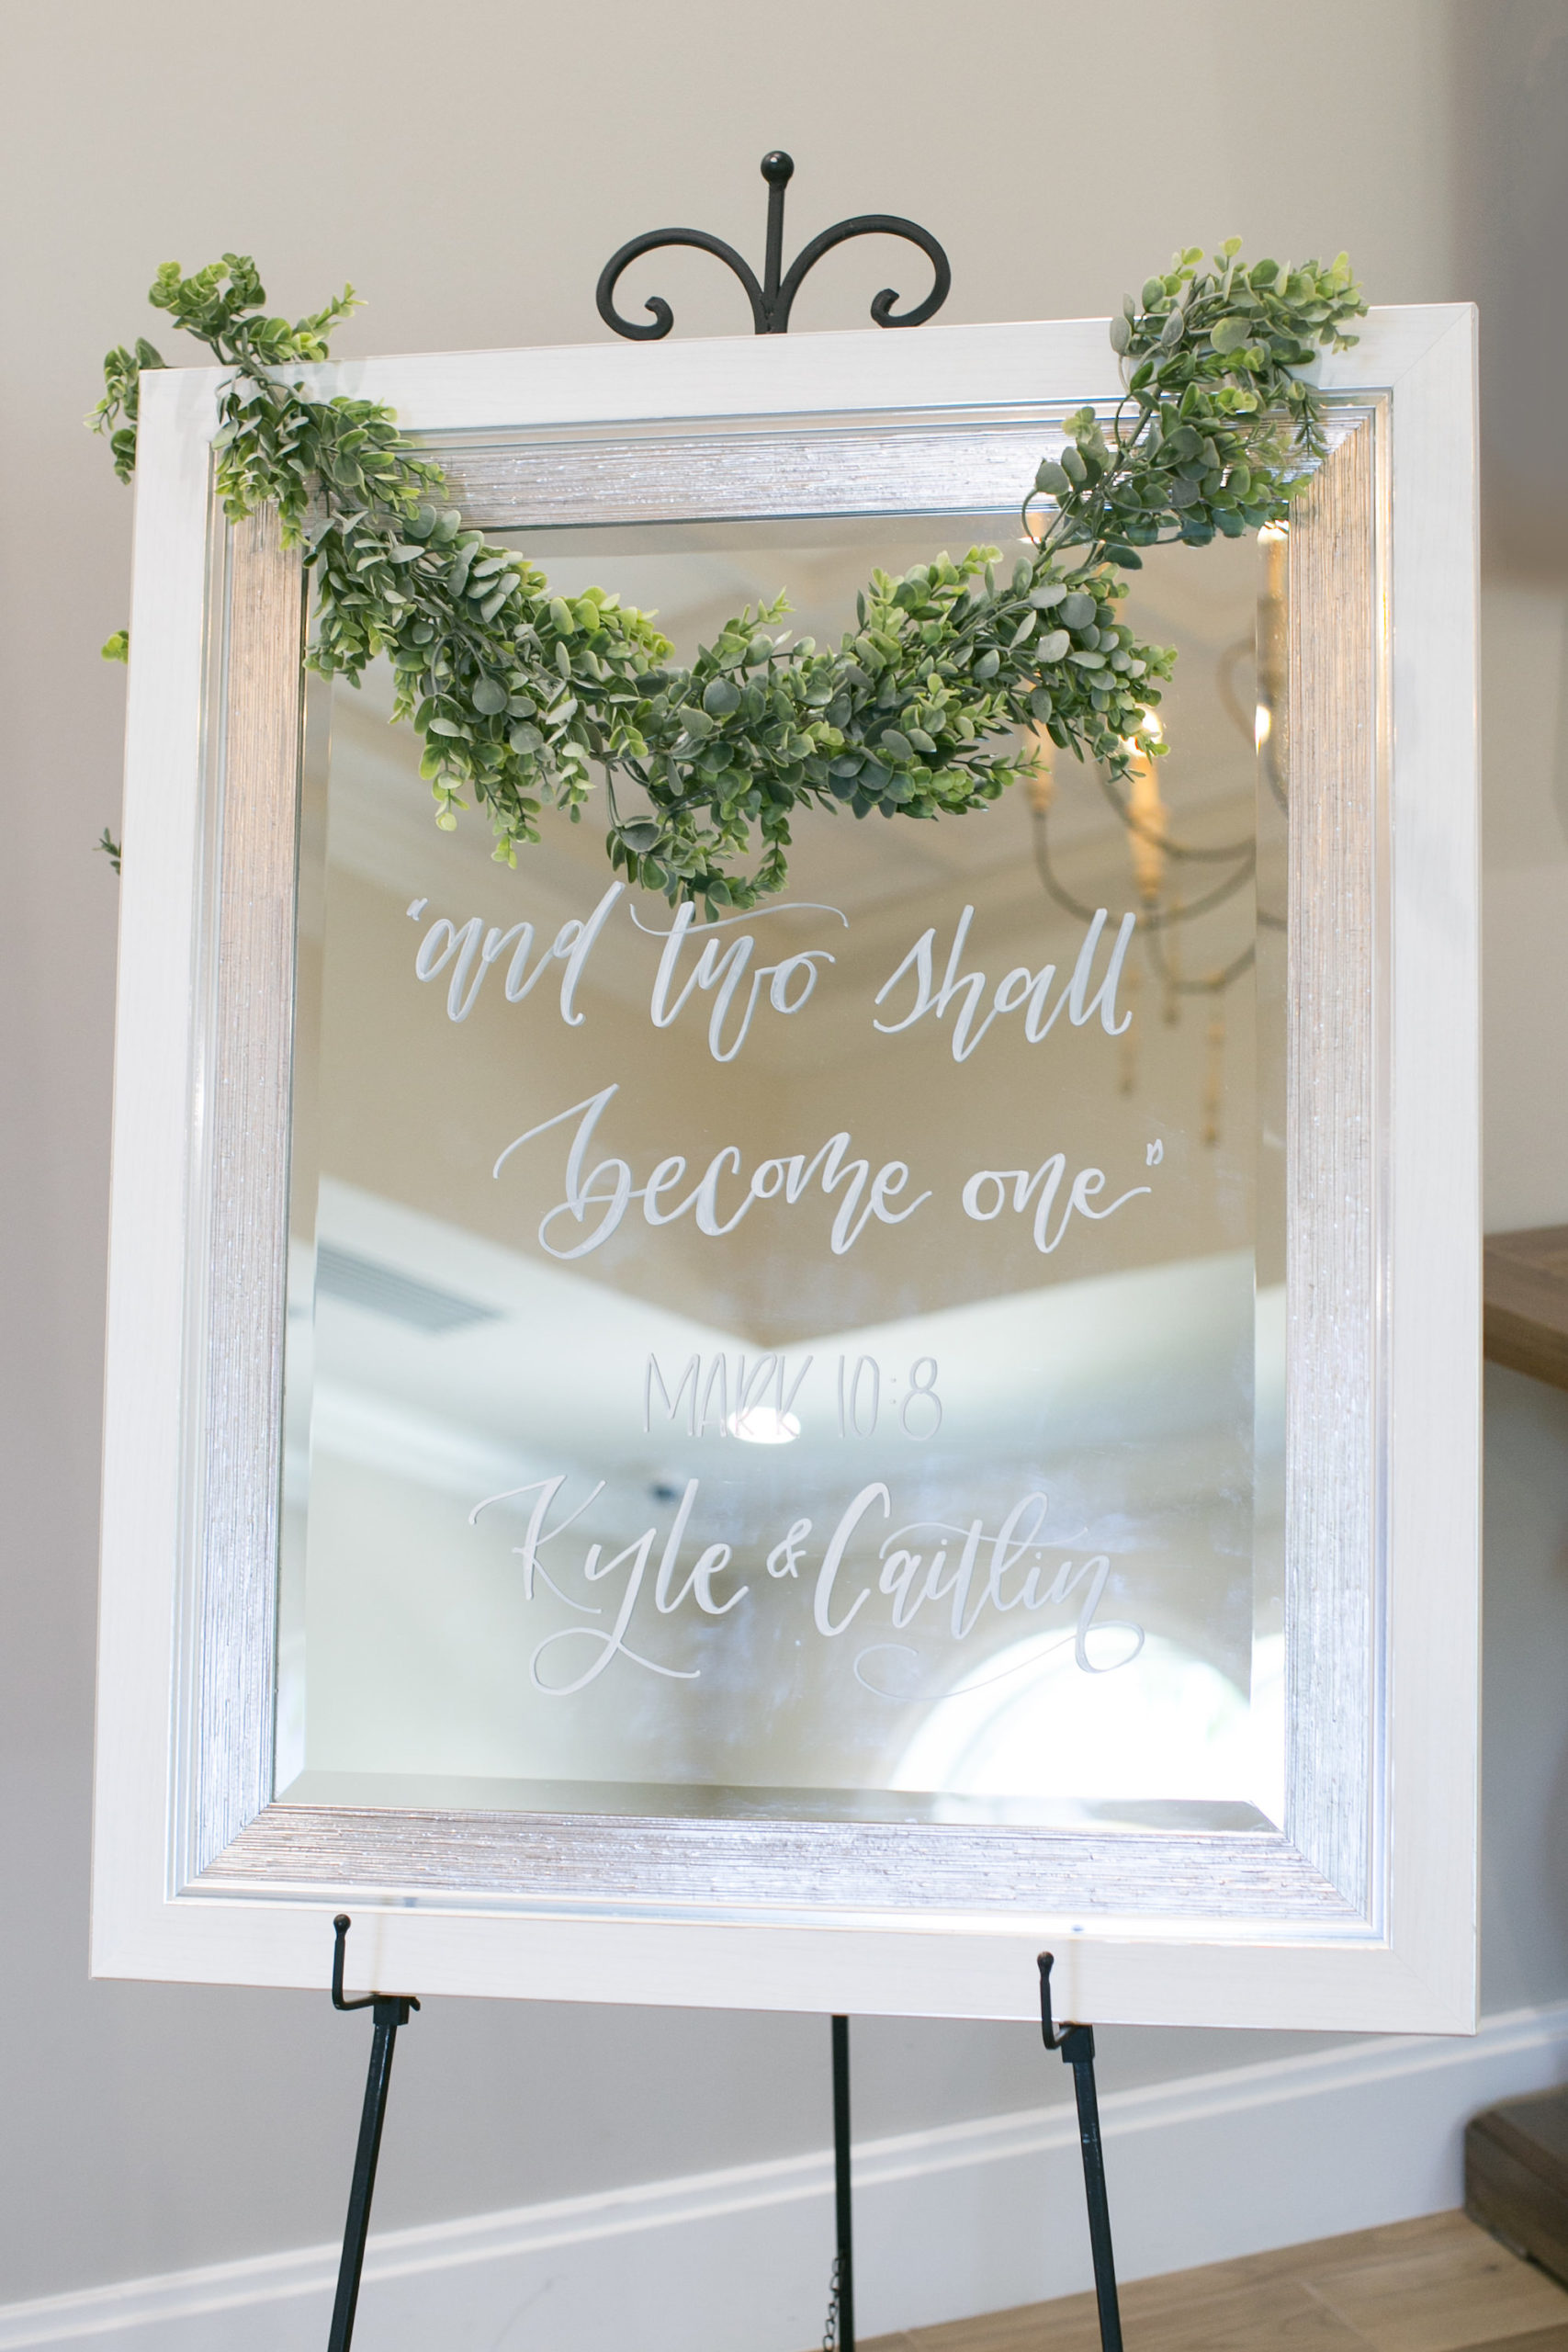 Classic Elegant White Framed Mirror with Script Font Welcome Sign with Greenery Garland   Tampa Bay Wedding Photographer Carrie Wildes Photography   Wedding Planner Love Lee Lane